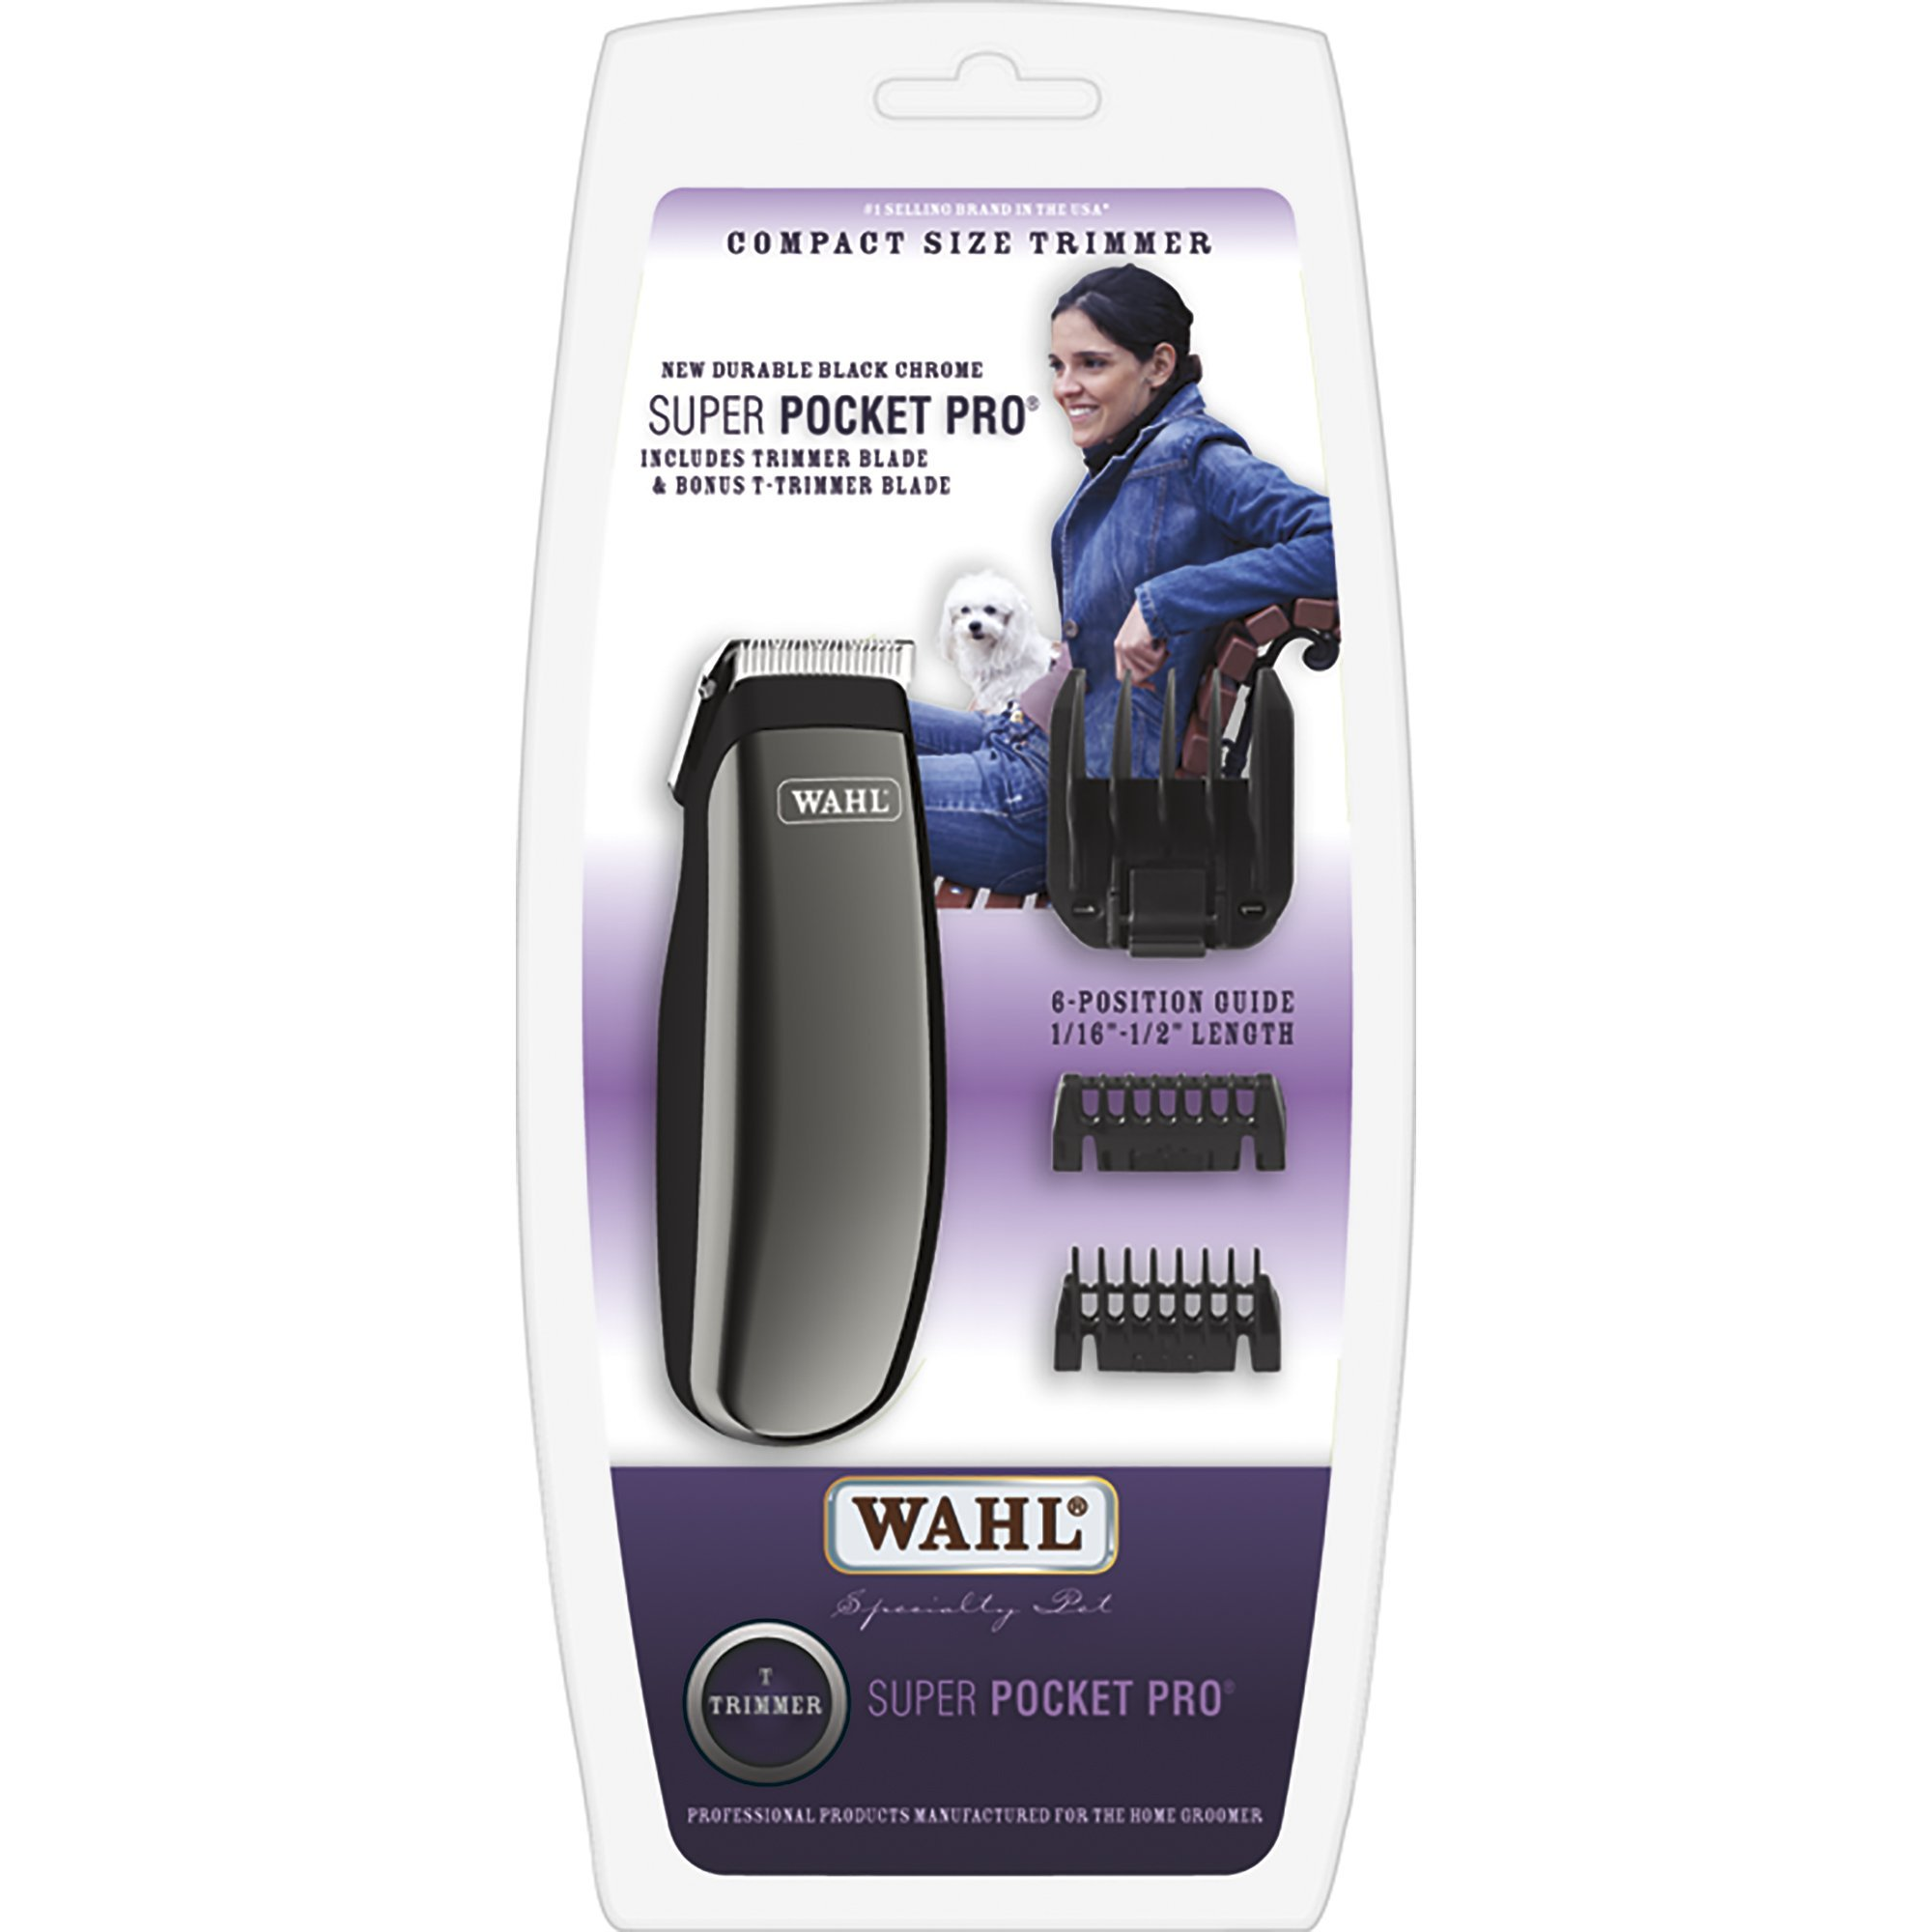 Wahl 9961-1291 Super Pocket Pro Trimmer by Wahl Professional Animal by WAHL